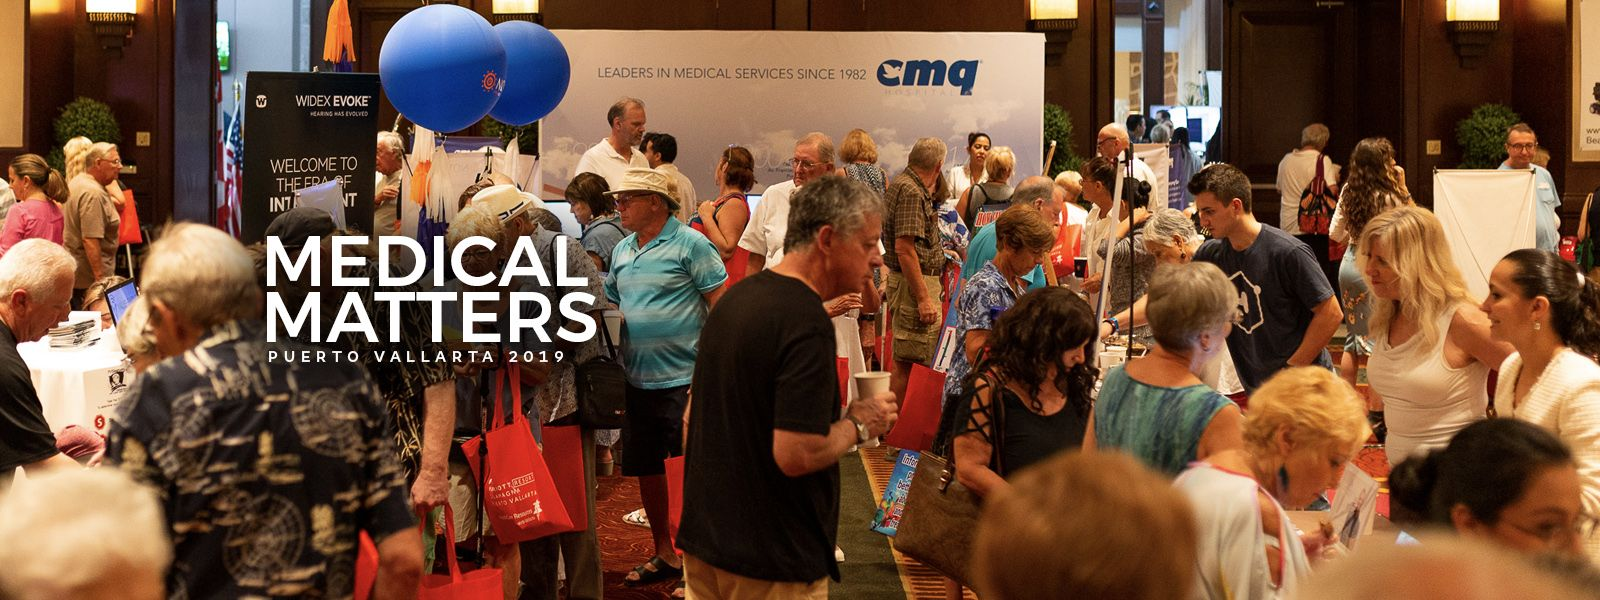 Medical Matters Puerto Vallarta 2019